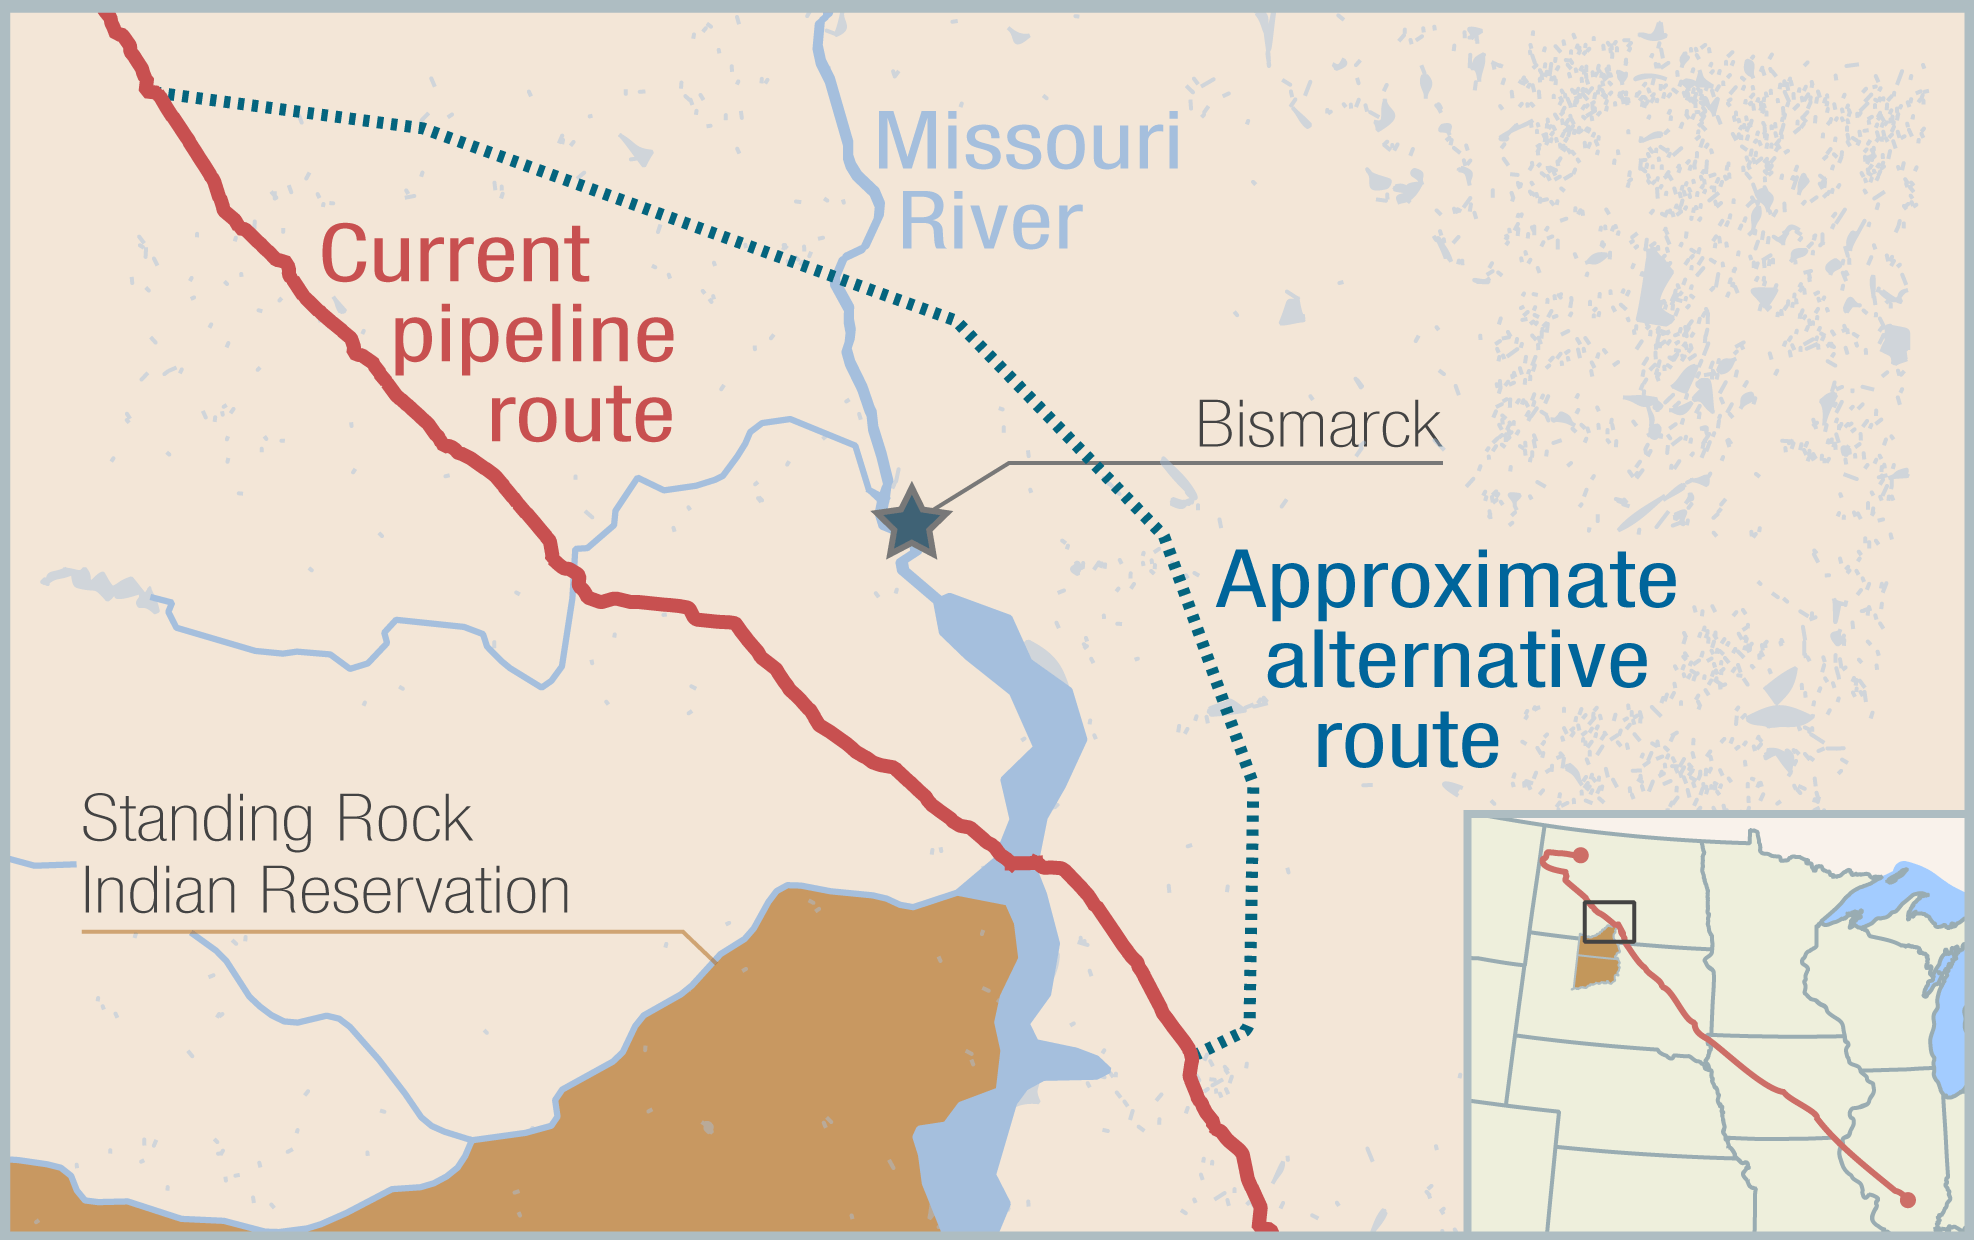 Dakota Access pipeline: Current, alternative route